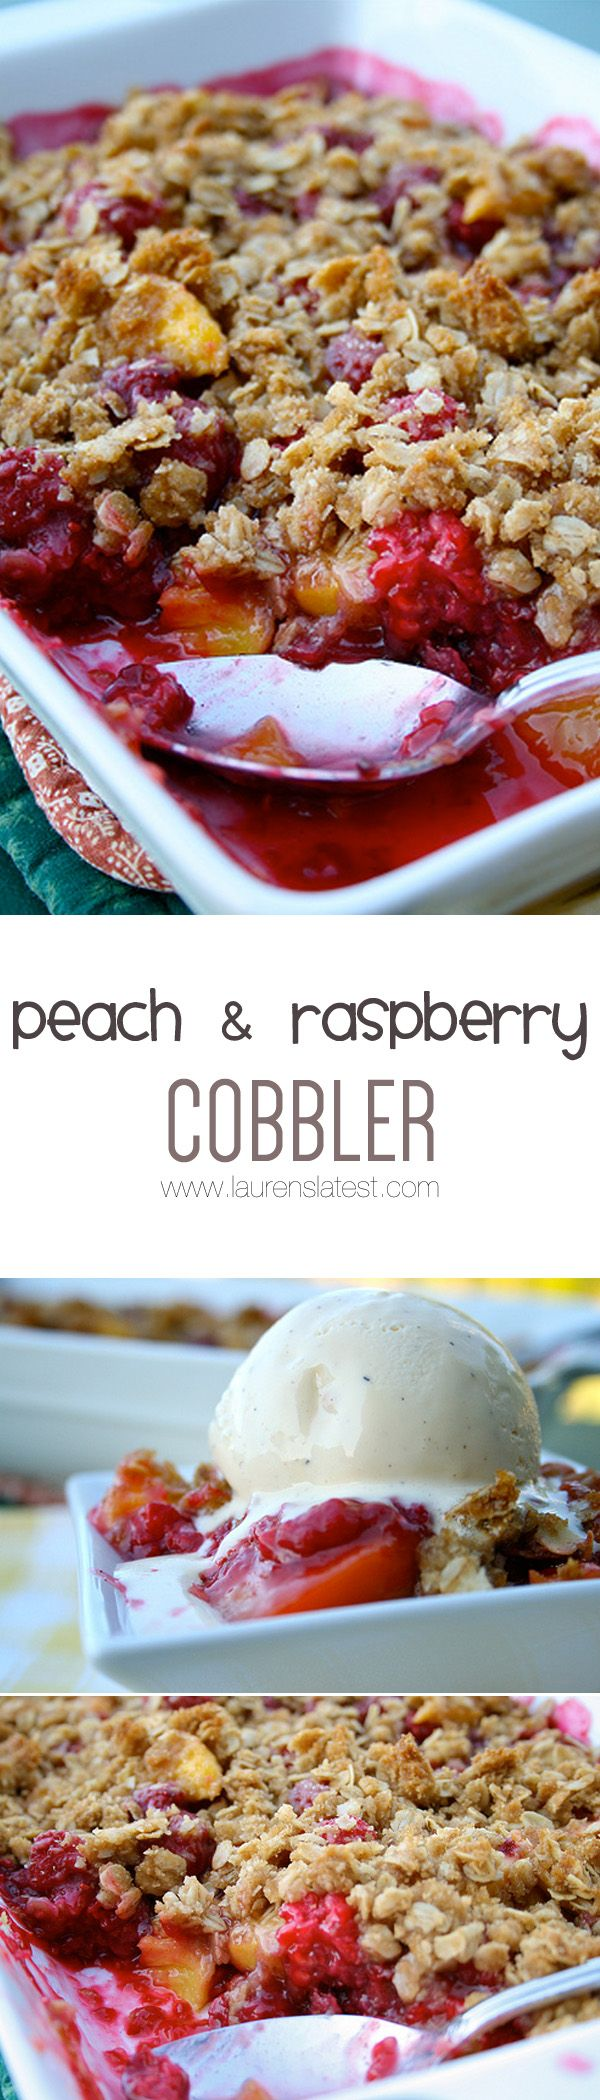 Peach & Raspberry Cobbler... and Homemade Ice Cream!